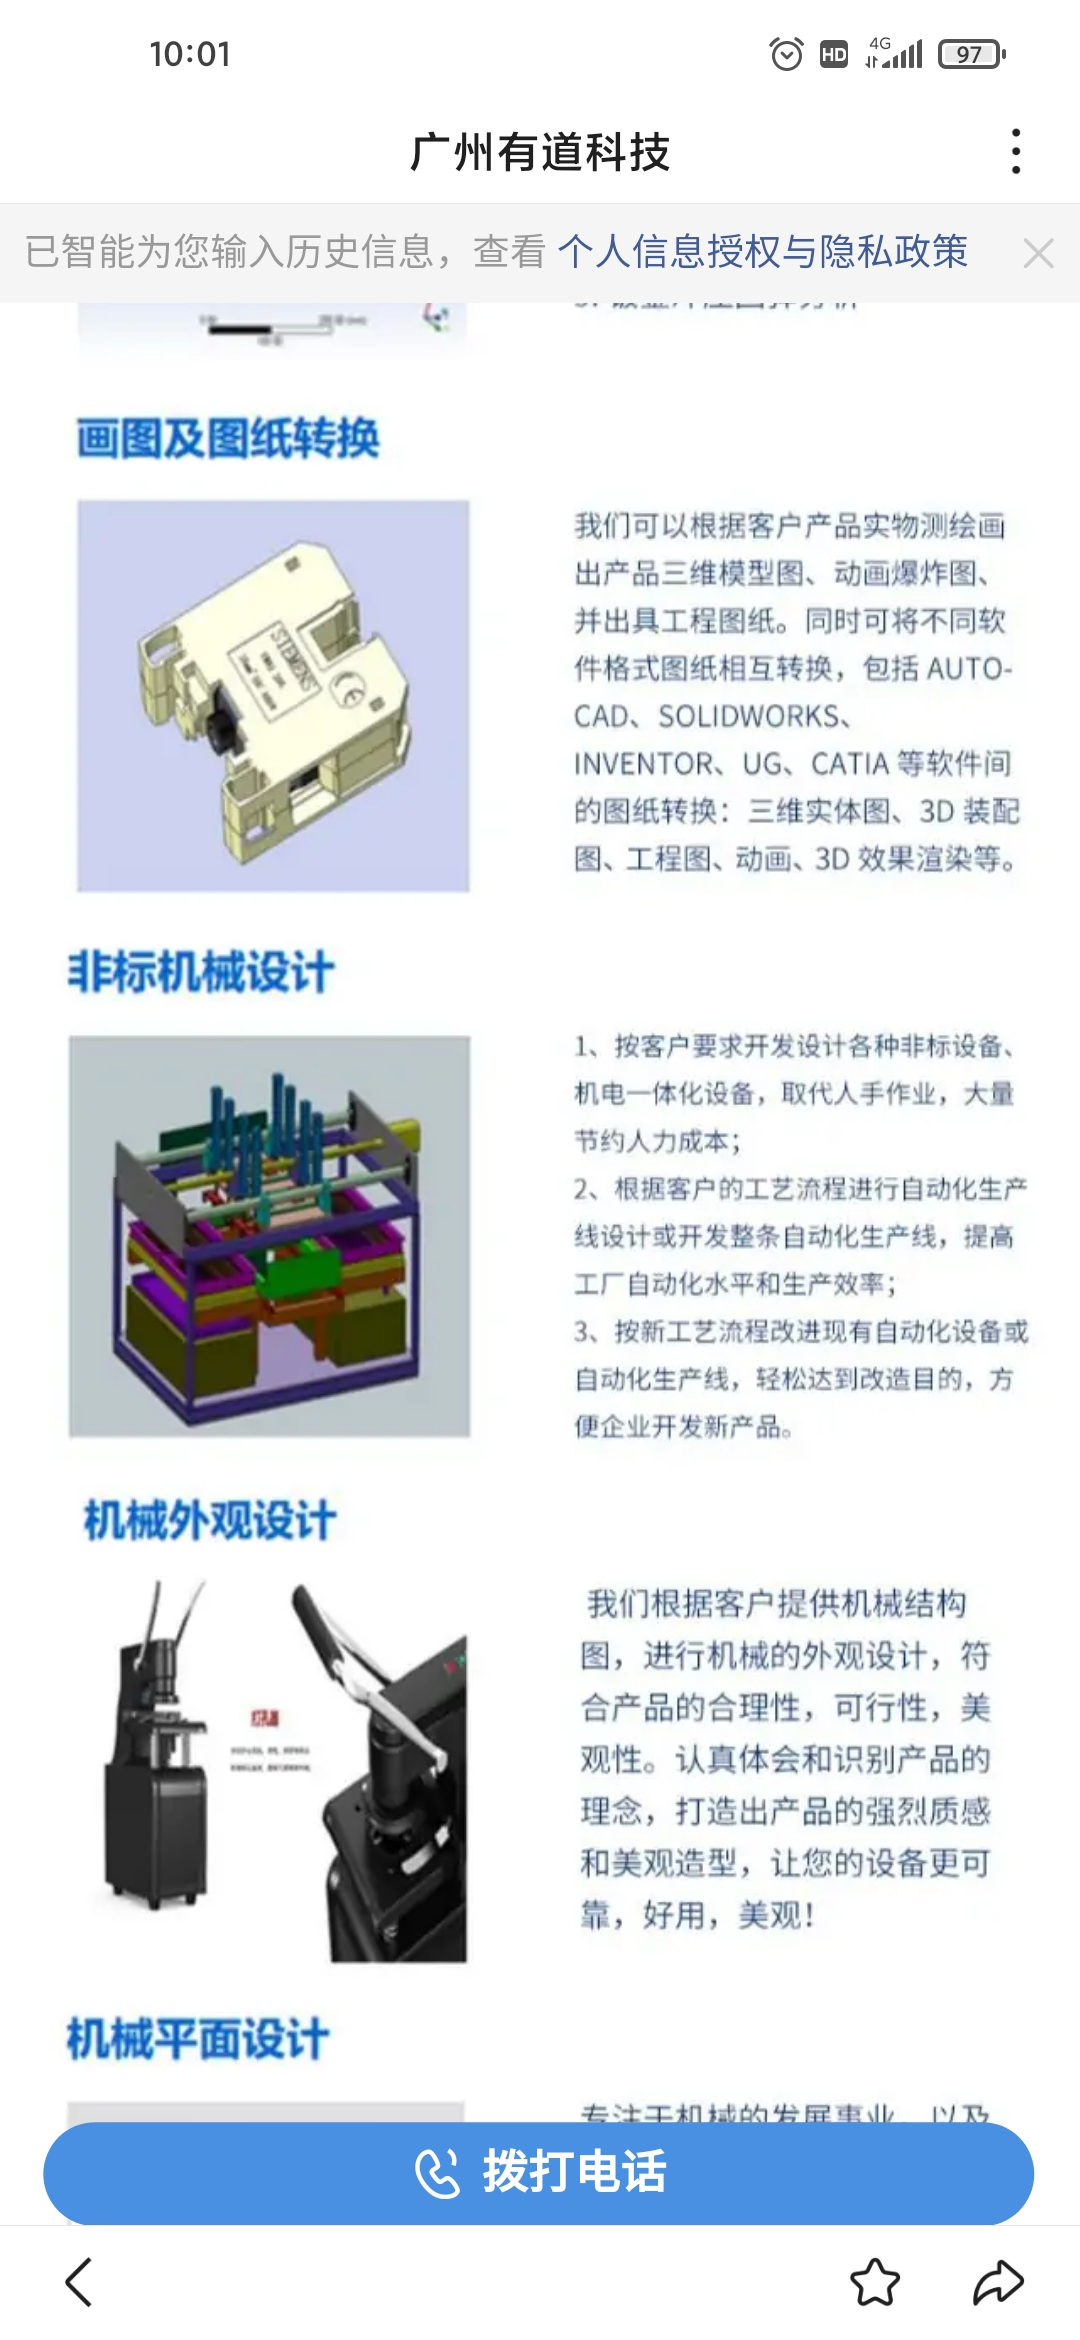 SolidWorks教学